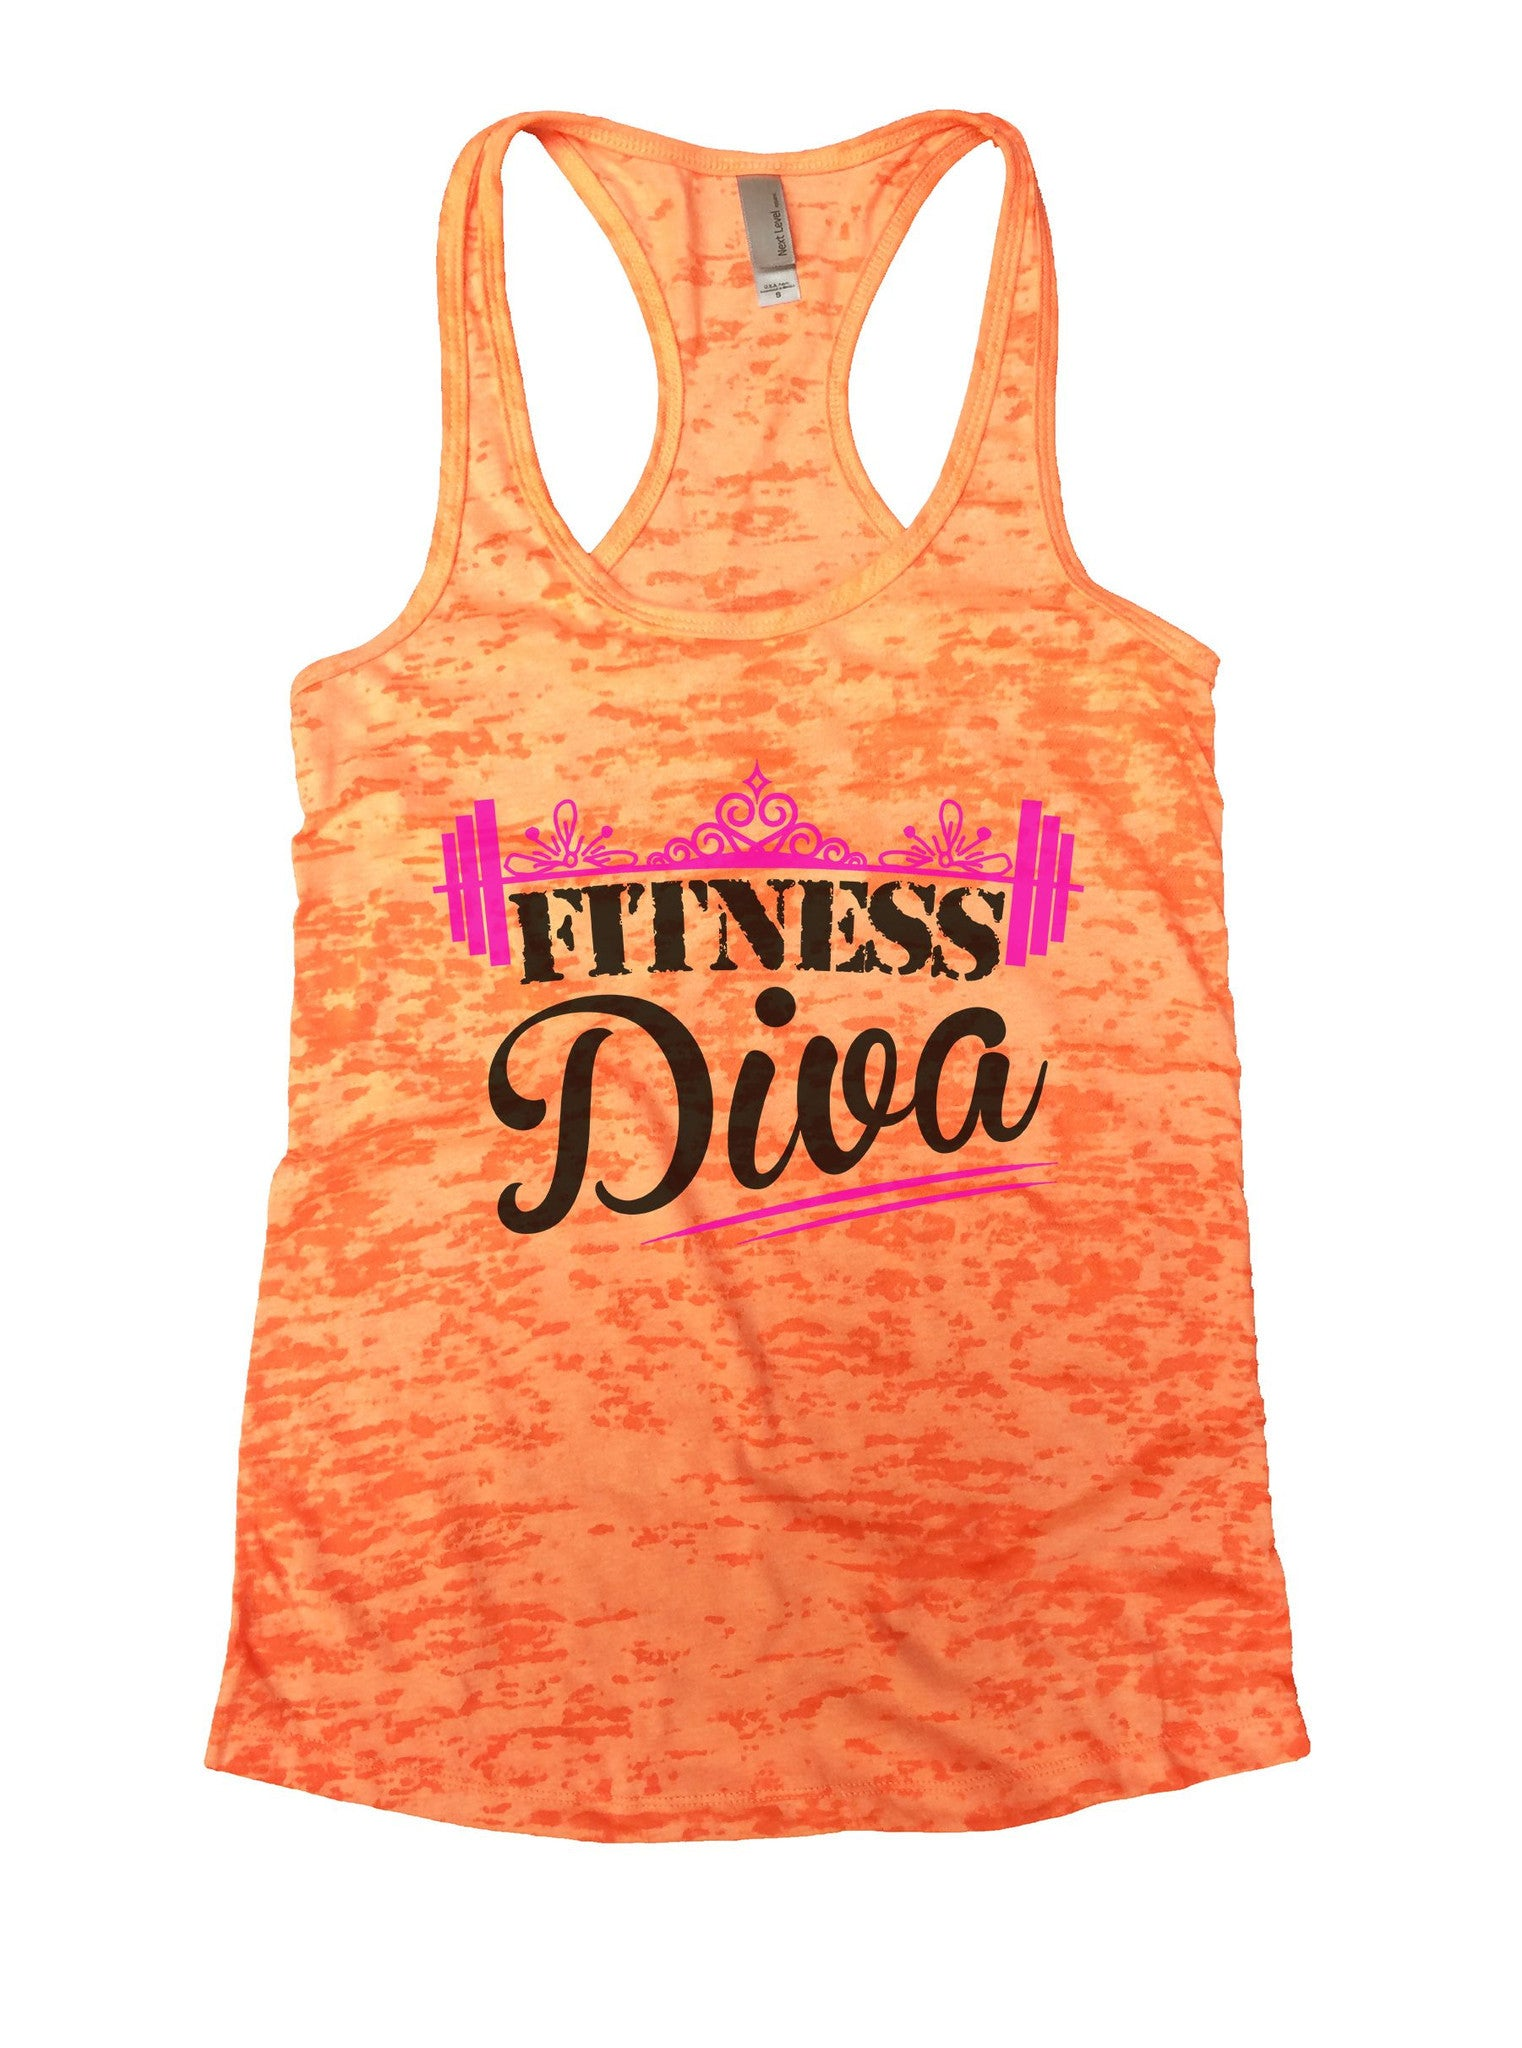 Fitness Diva Burnout Tank Top By BurnoutTankTops.com - 1050 - Funny Shirts Tank Tops Burnouts and Triblends  - 3